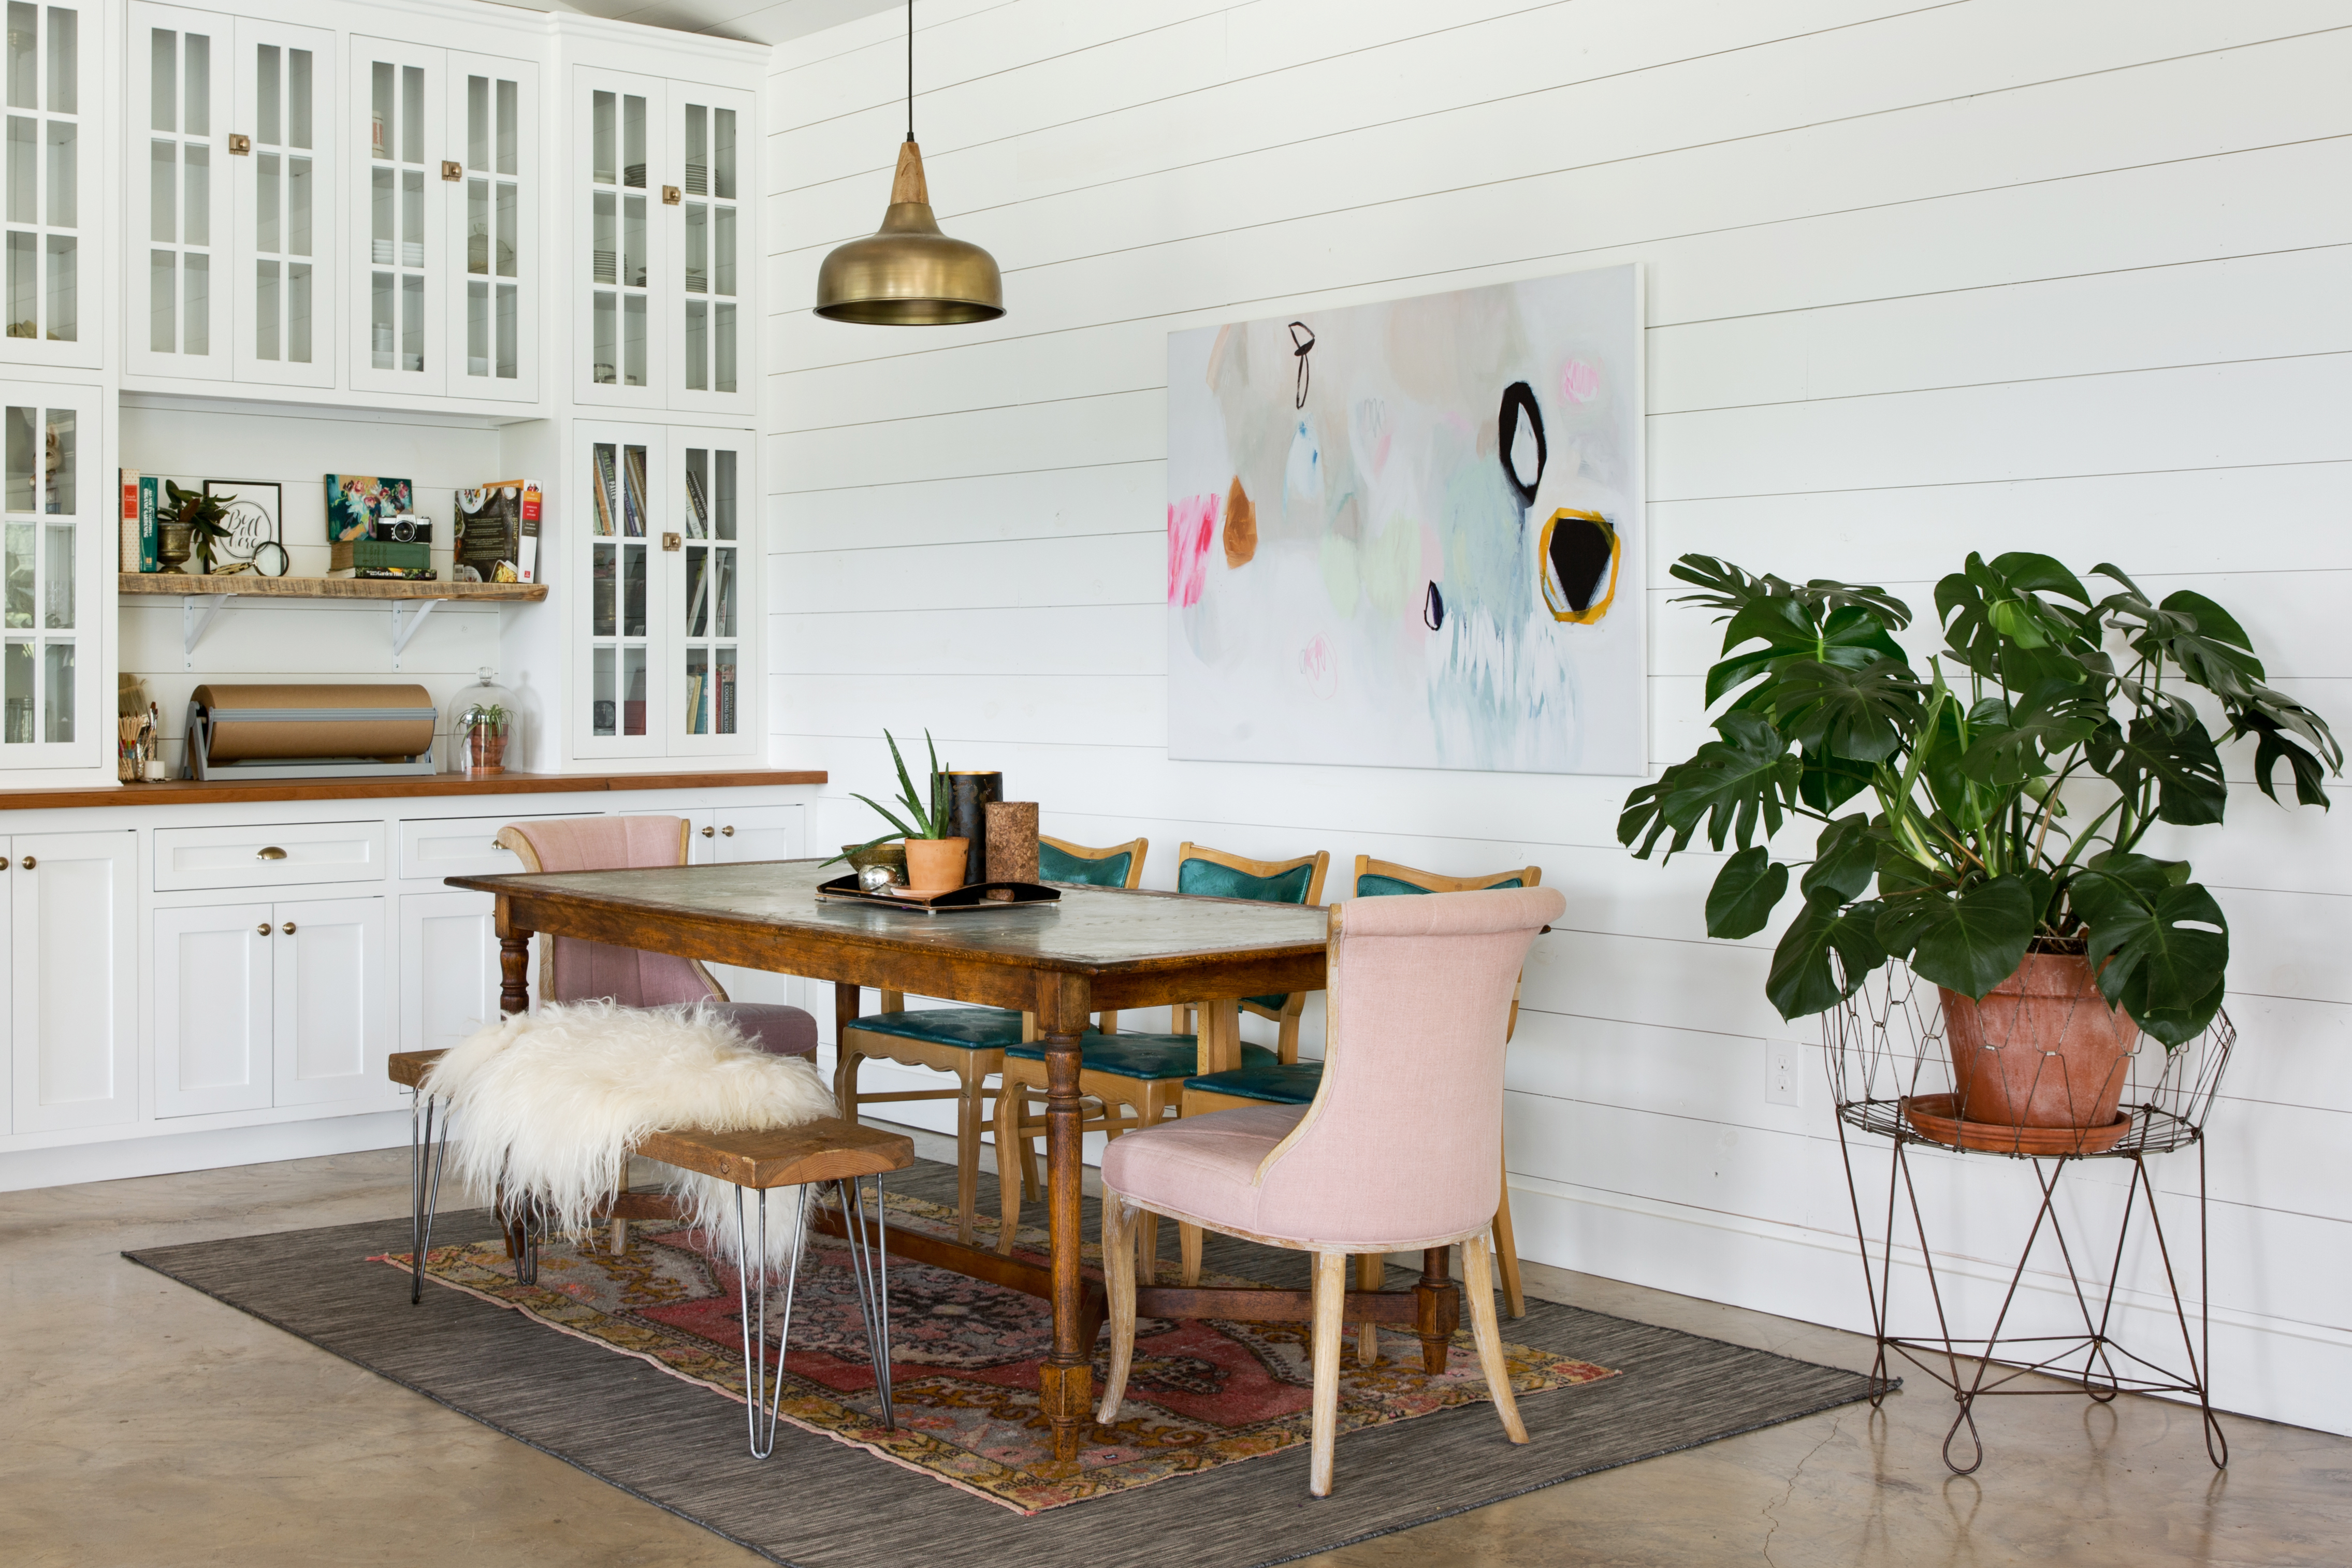 Get The Look Of This Layered, Rustic Glam Dining Room | Apartment With Regard To Best And Newest Partin 3 Piece Dining Sets (Image 10 of 20)